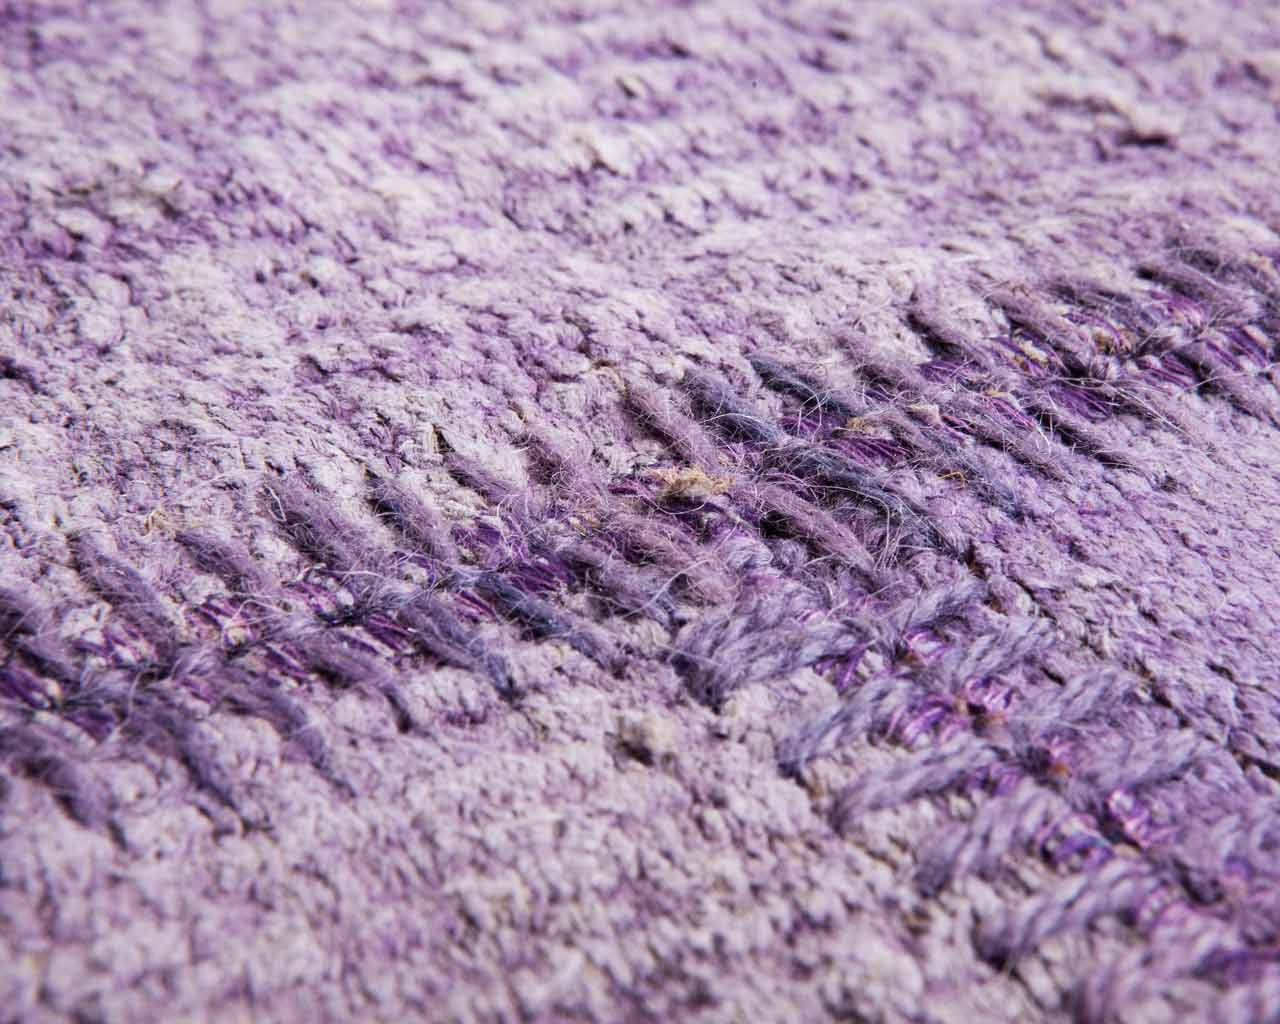 purple handstitching shades of lilac high quality